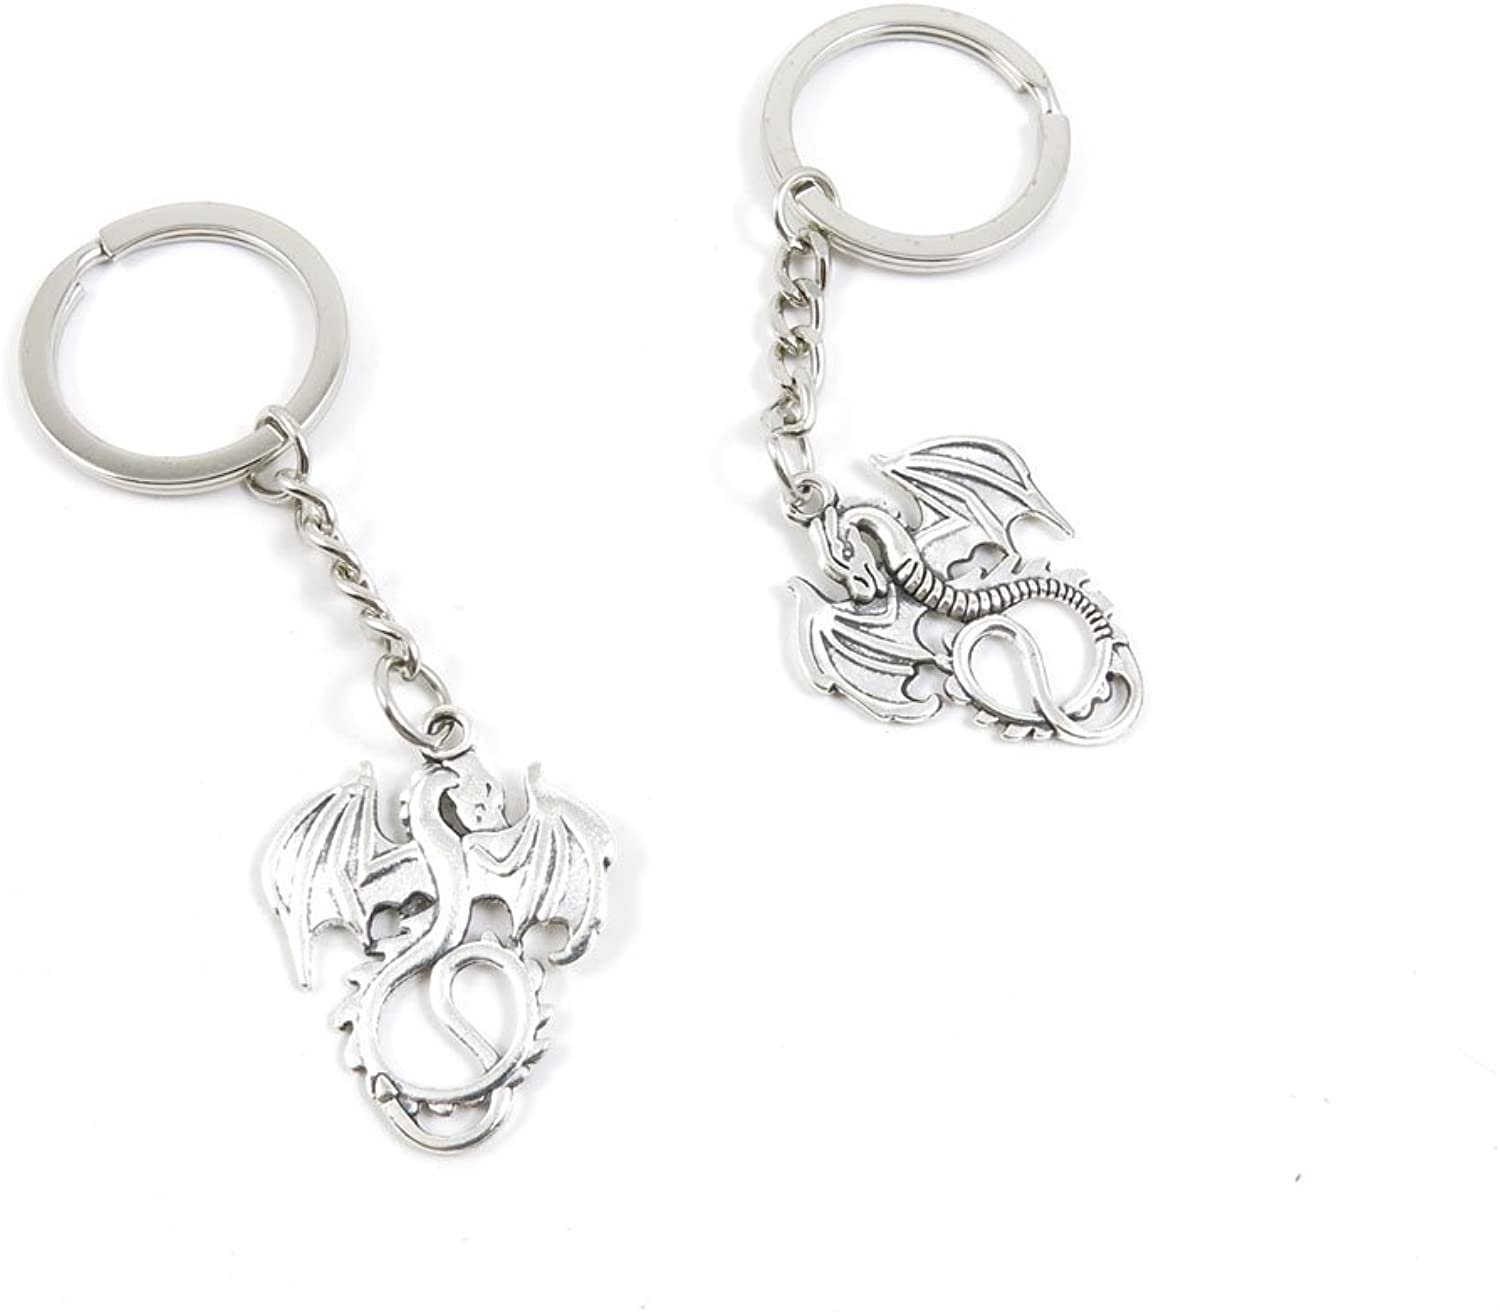 100 Pieces Keychain Keyring Door Car Key Chain Ring Tag Charms Bulk Supply Jewelry Making Clasp Findings S8IV1X Dragon